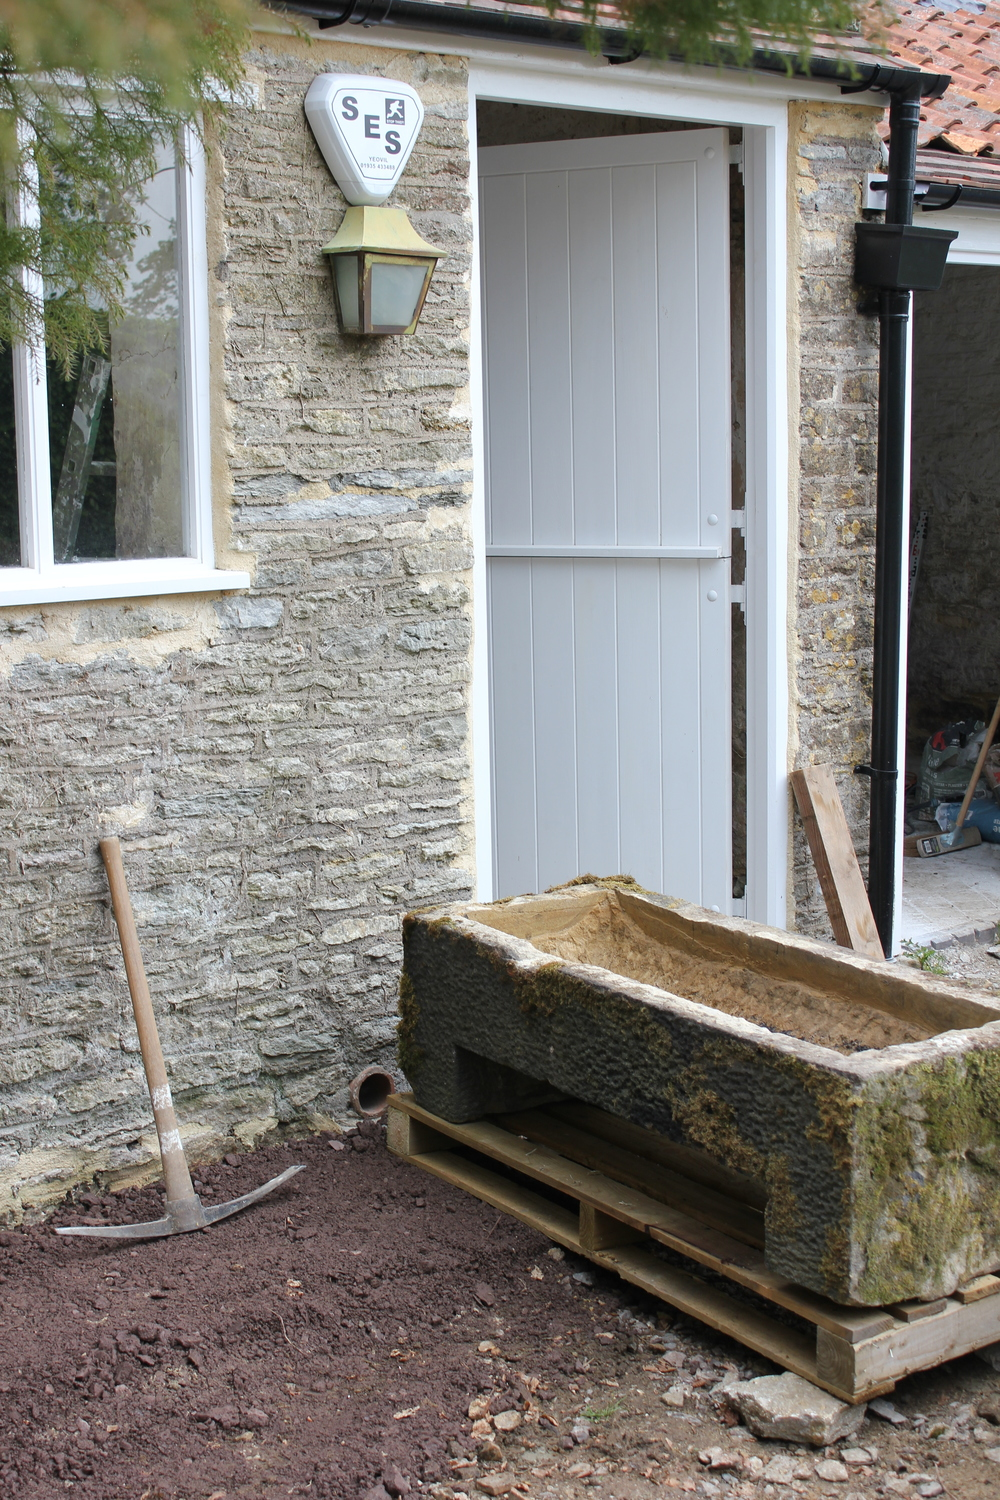 The reclaimed stone trough arrives